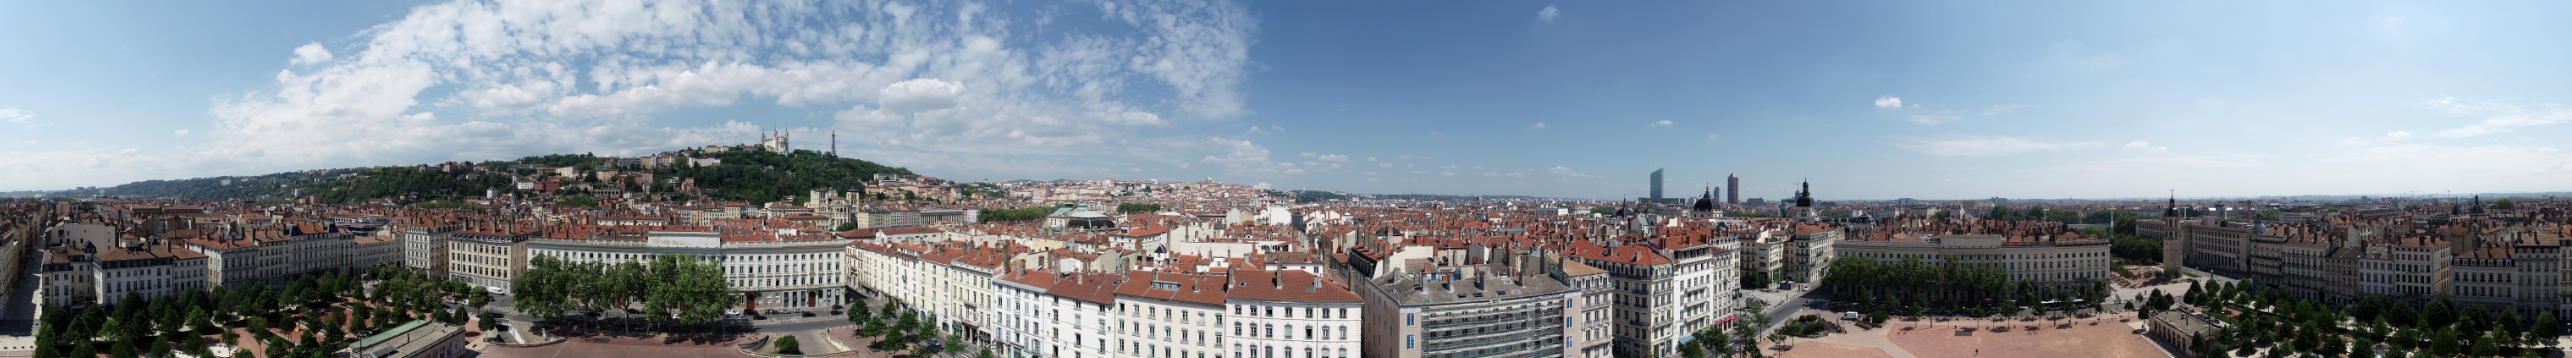 Panoramiques -Lyon-omnoviewprod